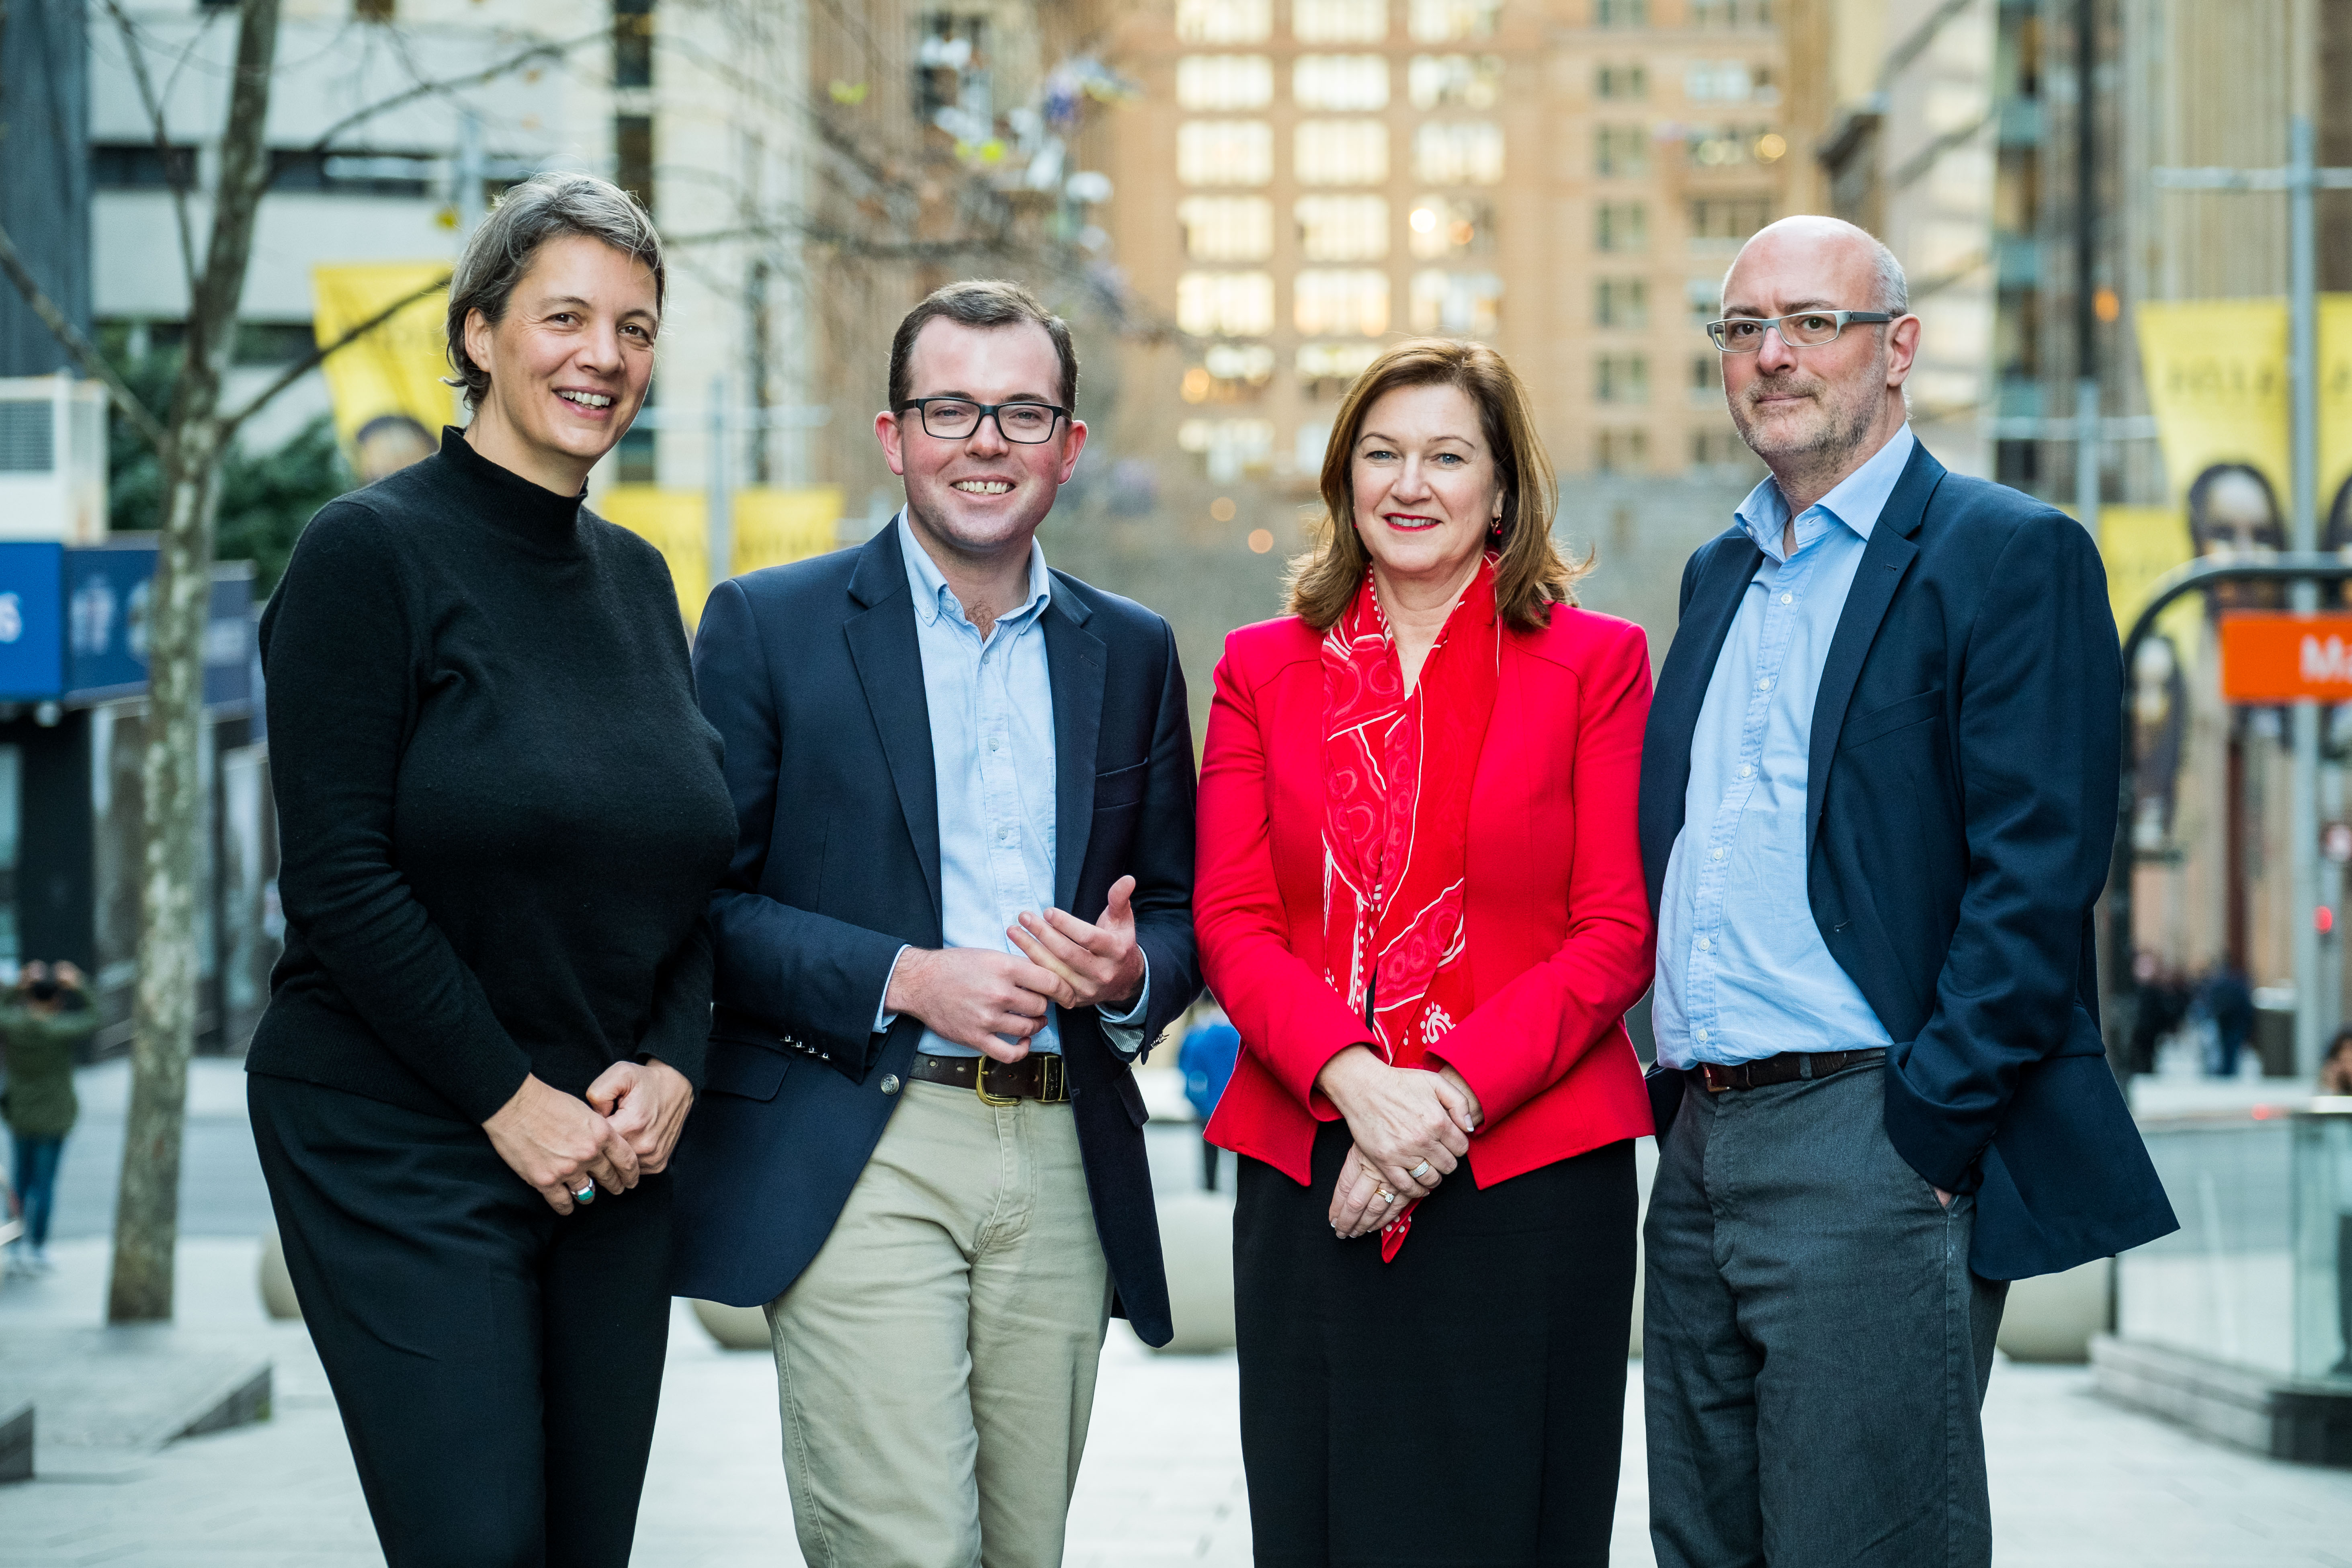 Image courtesy of Business Events Sydney. (L-R) Scientia Professor Michelle Simmons, The Hon. Minister Adam Marshall MP, Lyn Lewis-Smith, Scientia Professor Sven Rogge.